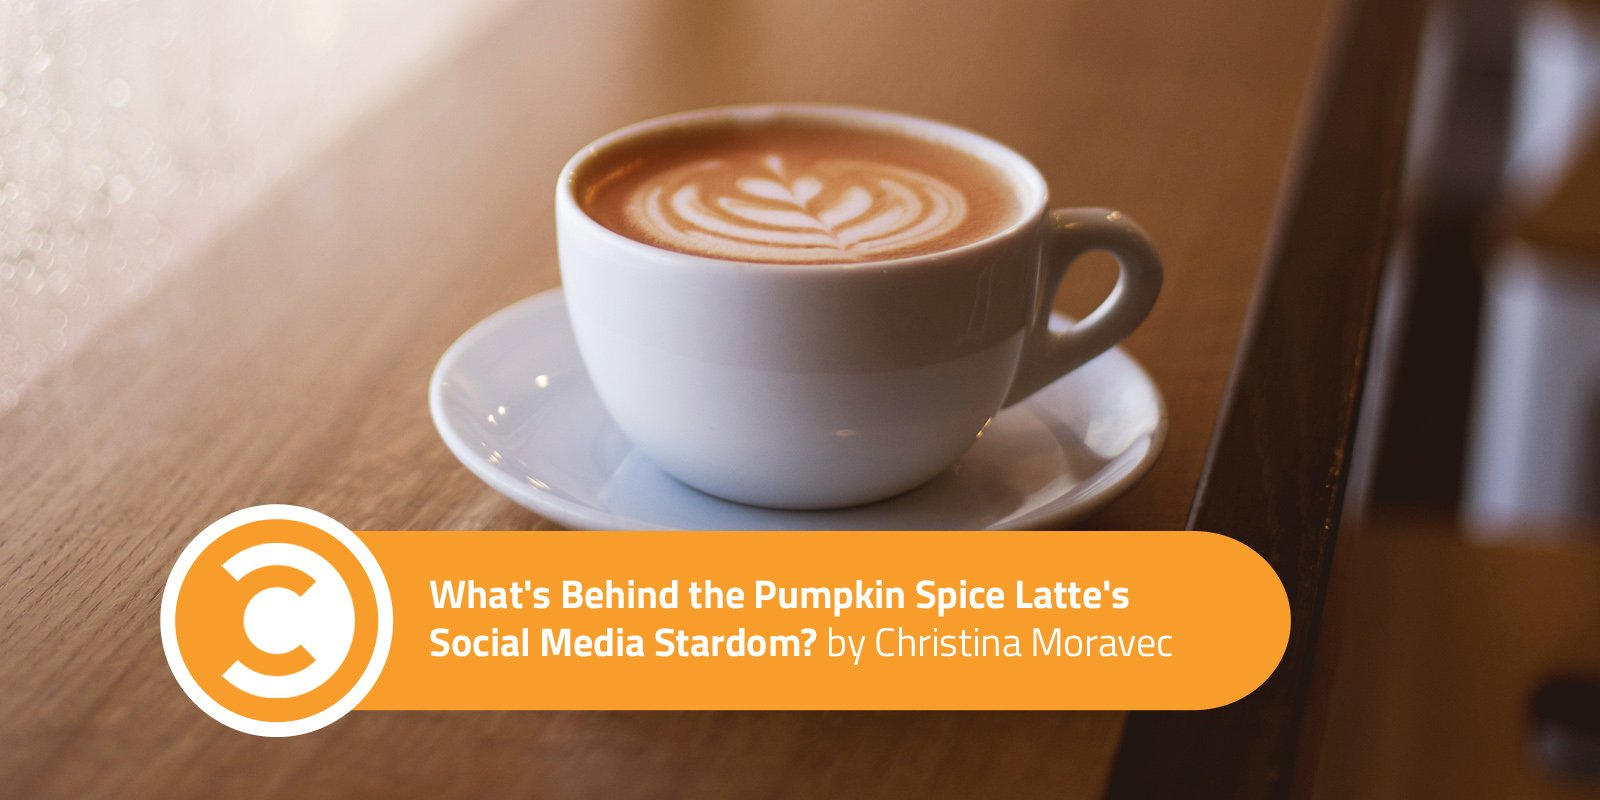 What's Behind the Pumpkin Spice Latte's Social Media Stardom